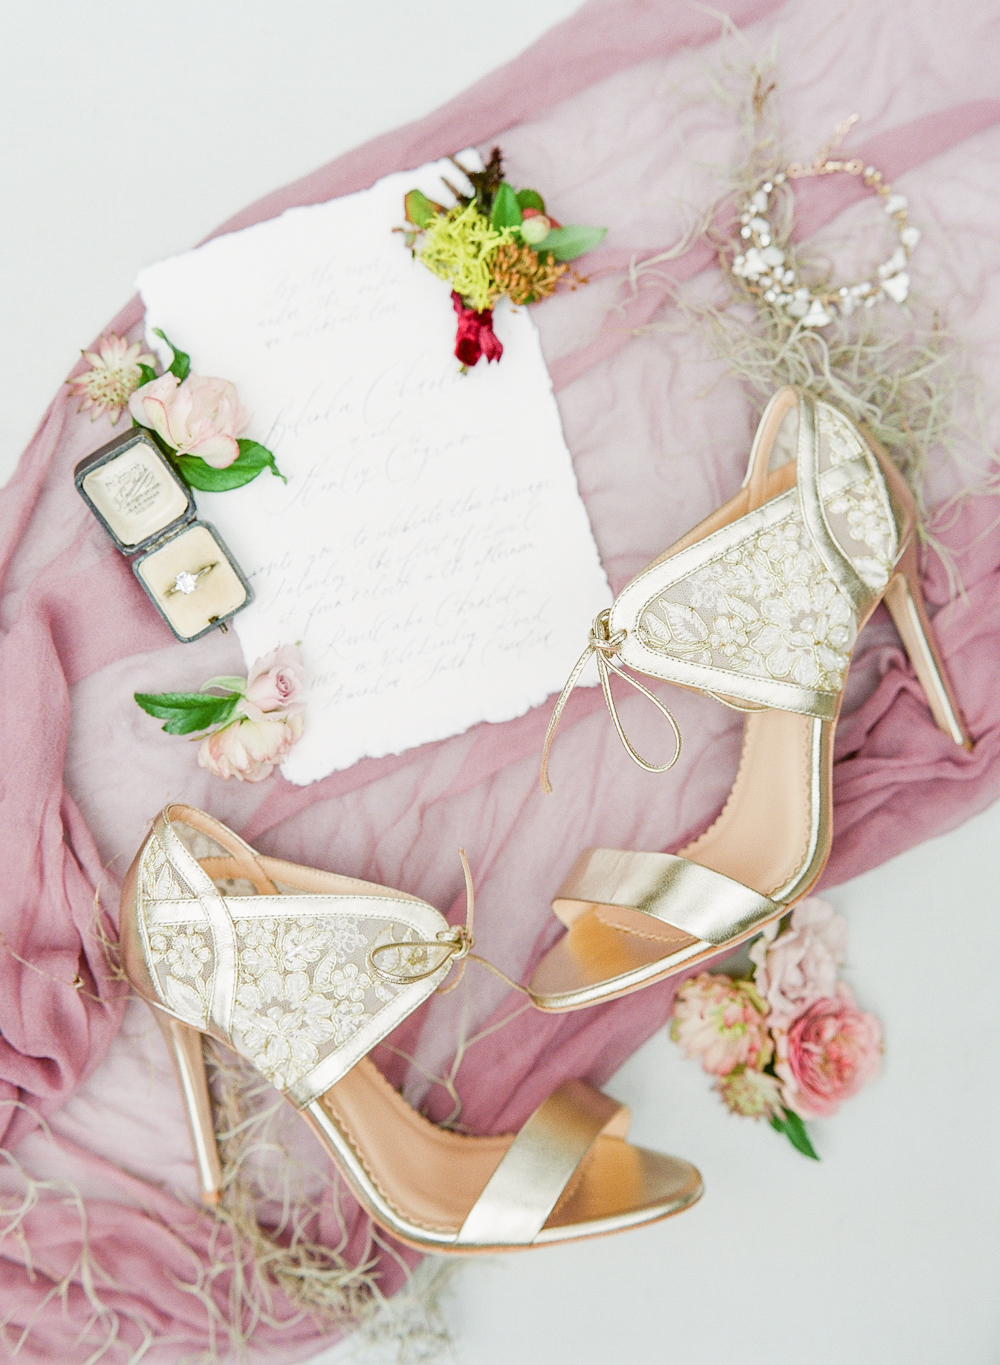 Janine_Licare_Photography_Charleston_Wedding_Romantic_Bella_Belle_Shoes_East_Made_Event_Company_BHLDN_Destination-1.jpg